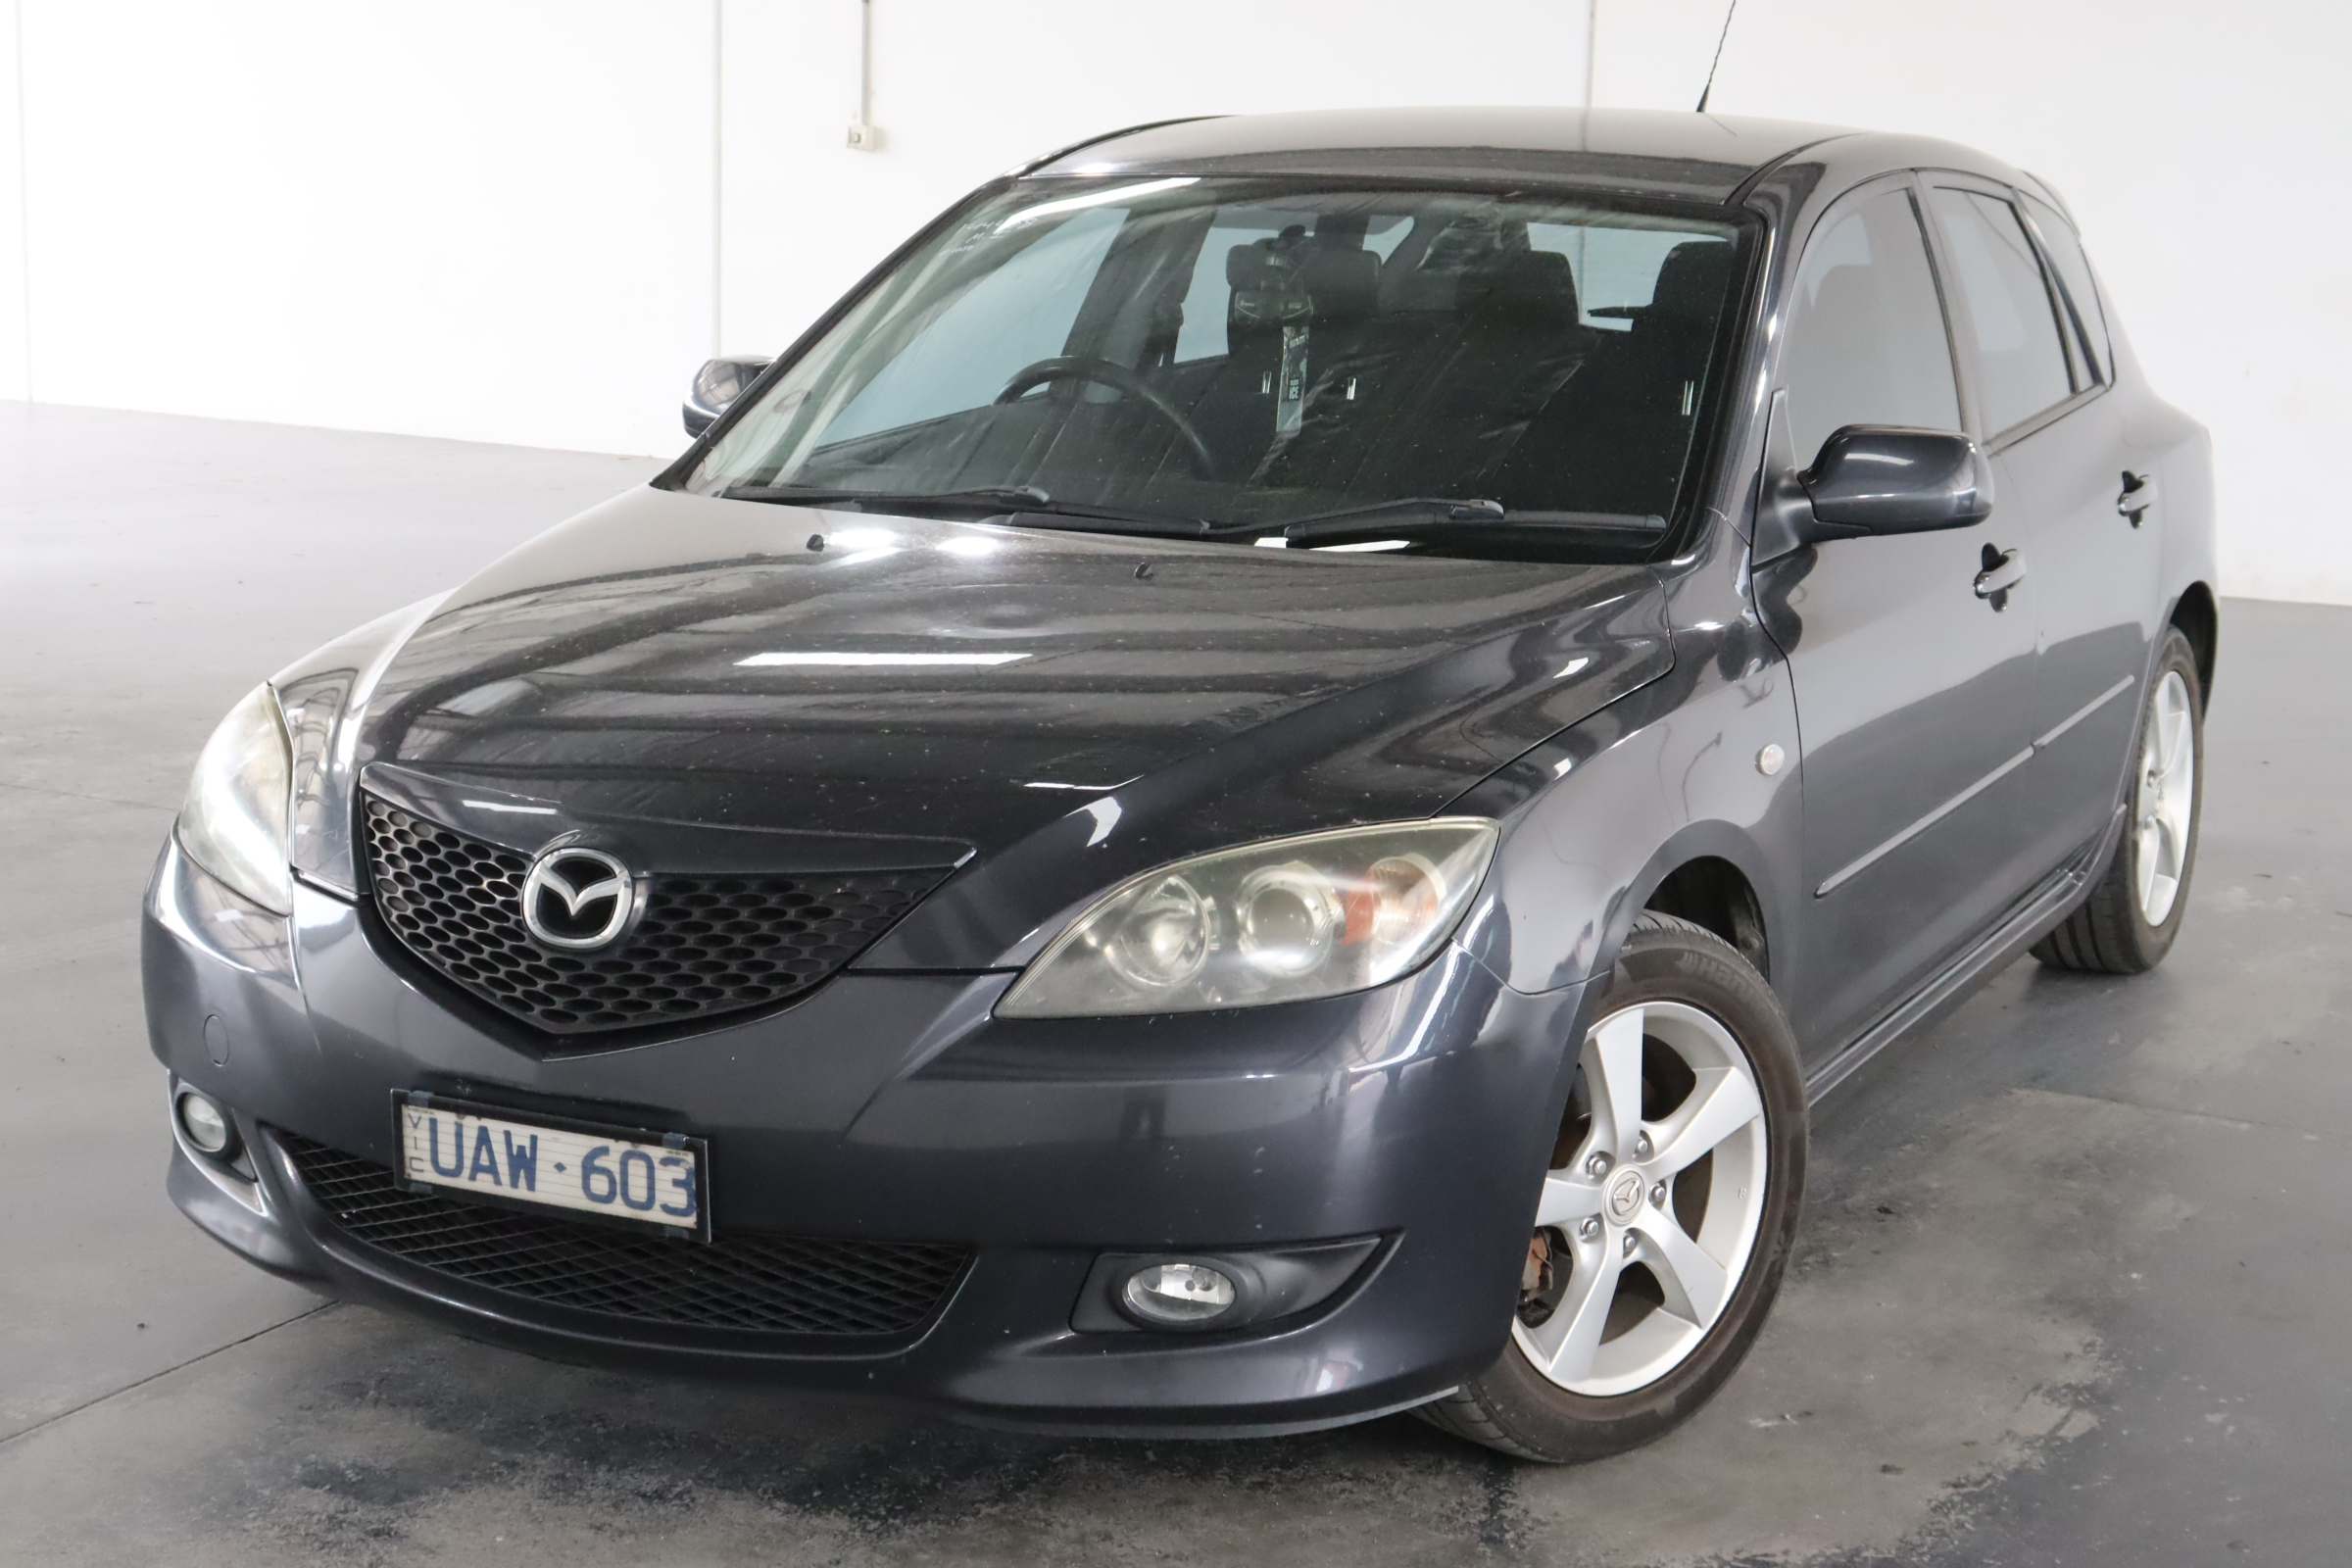 2006 Mazda 3 Maxx Sport BK Manual Hatchback